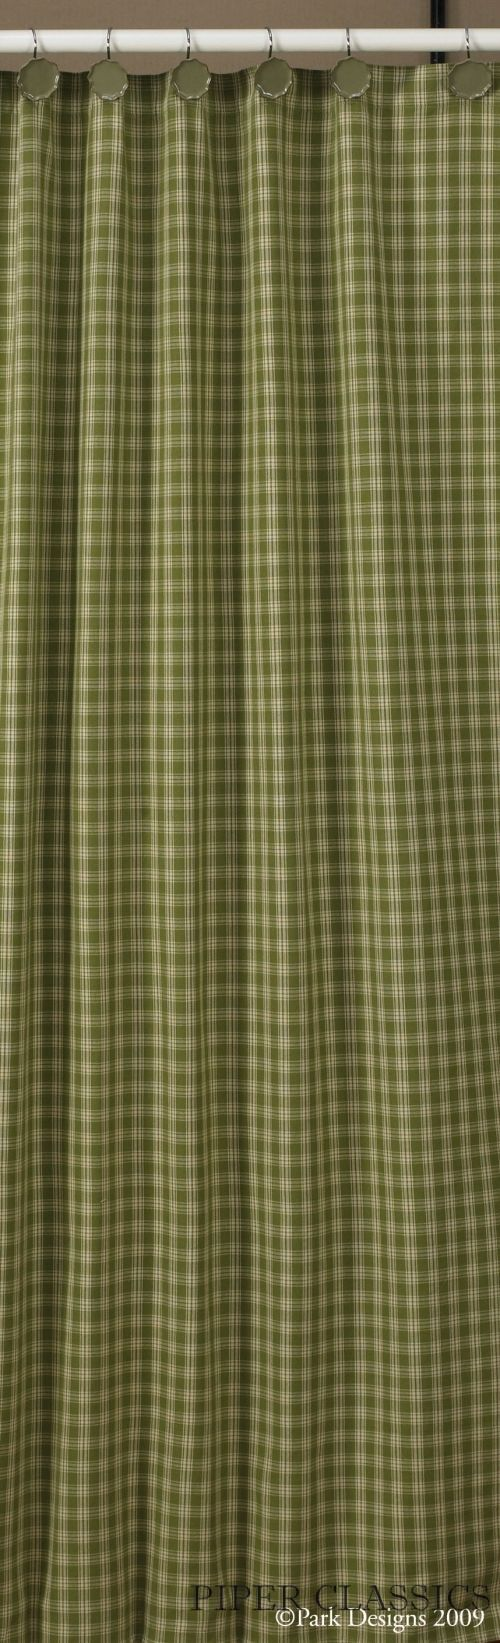 Shower Curtains Country Style Country Shower Curtains Sturbridge Green Shower Curtain